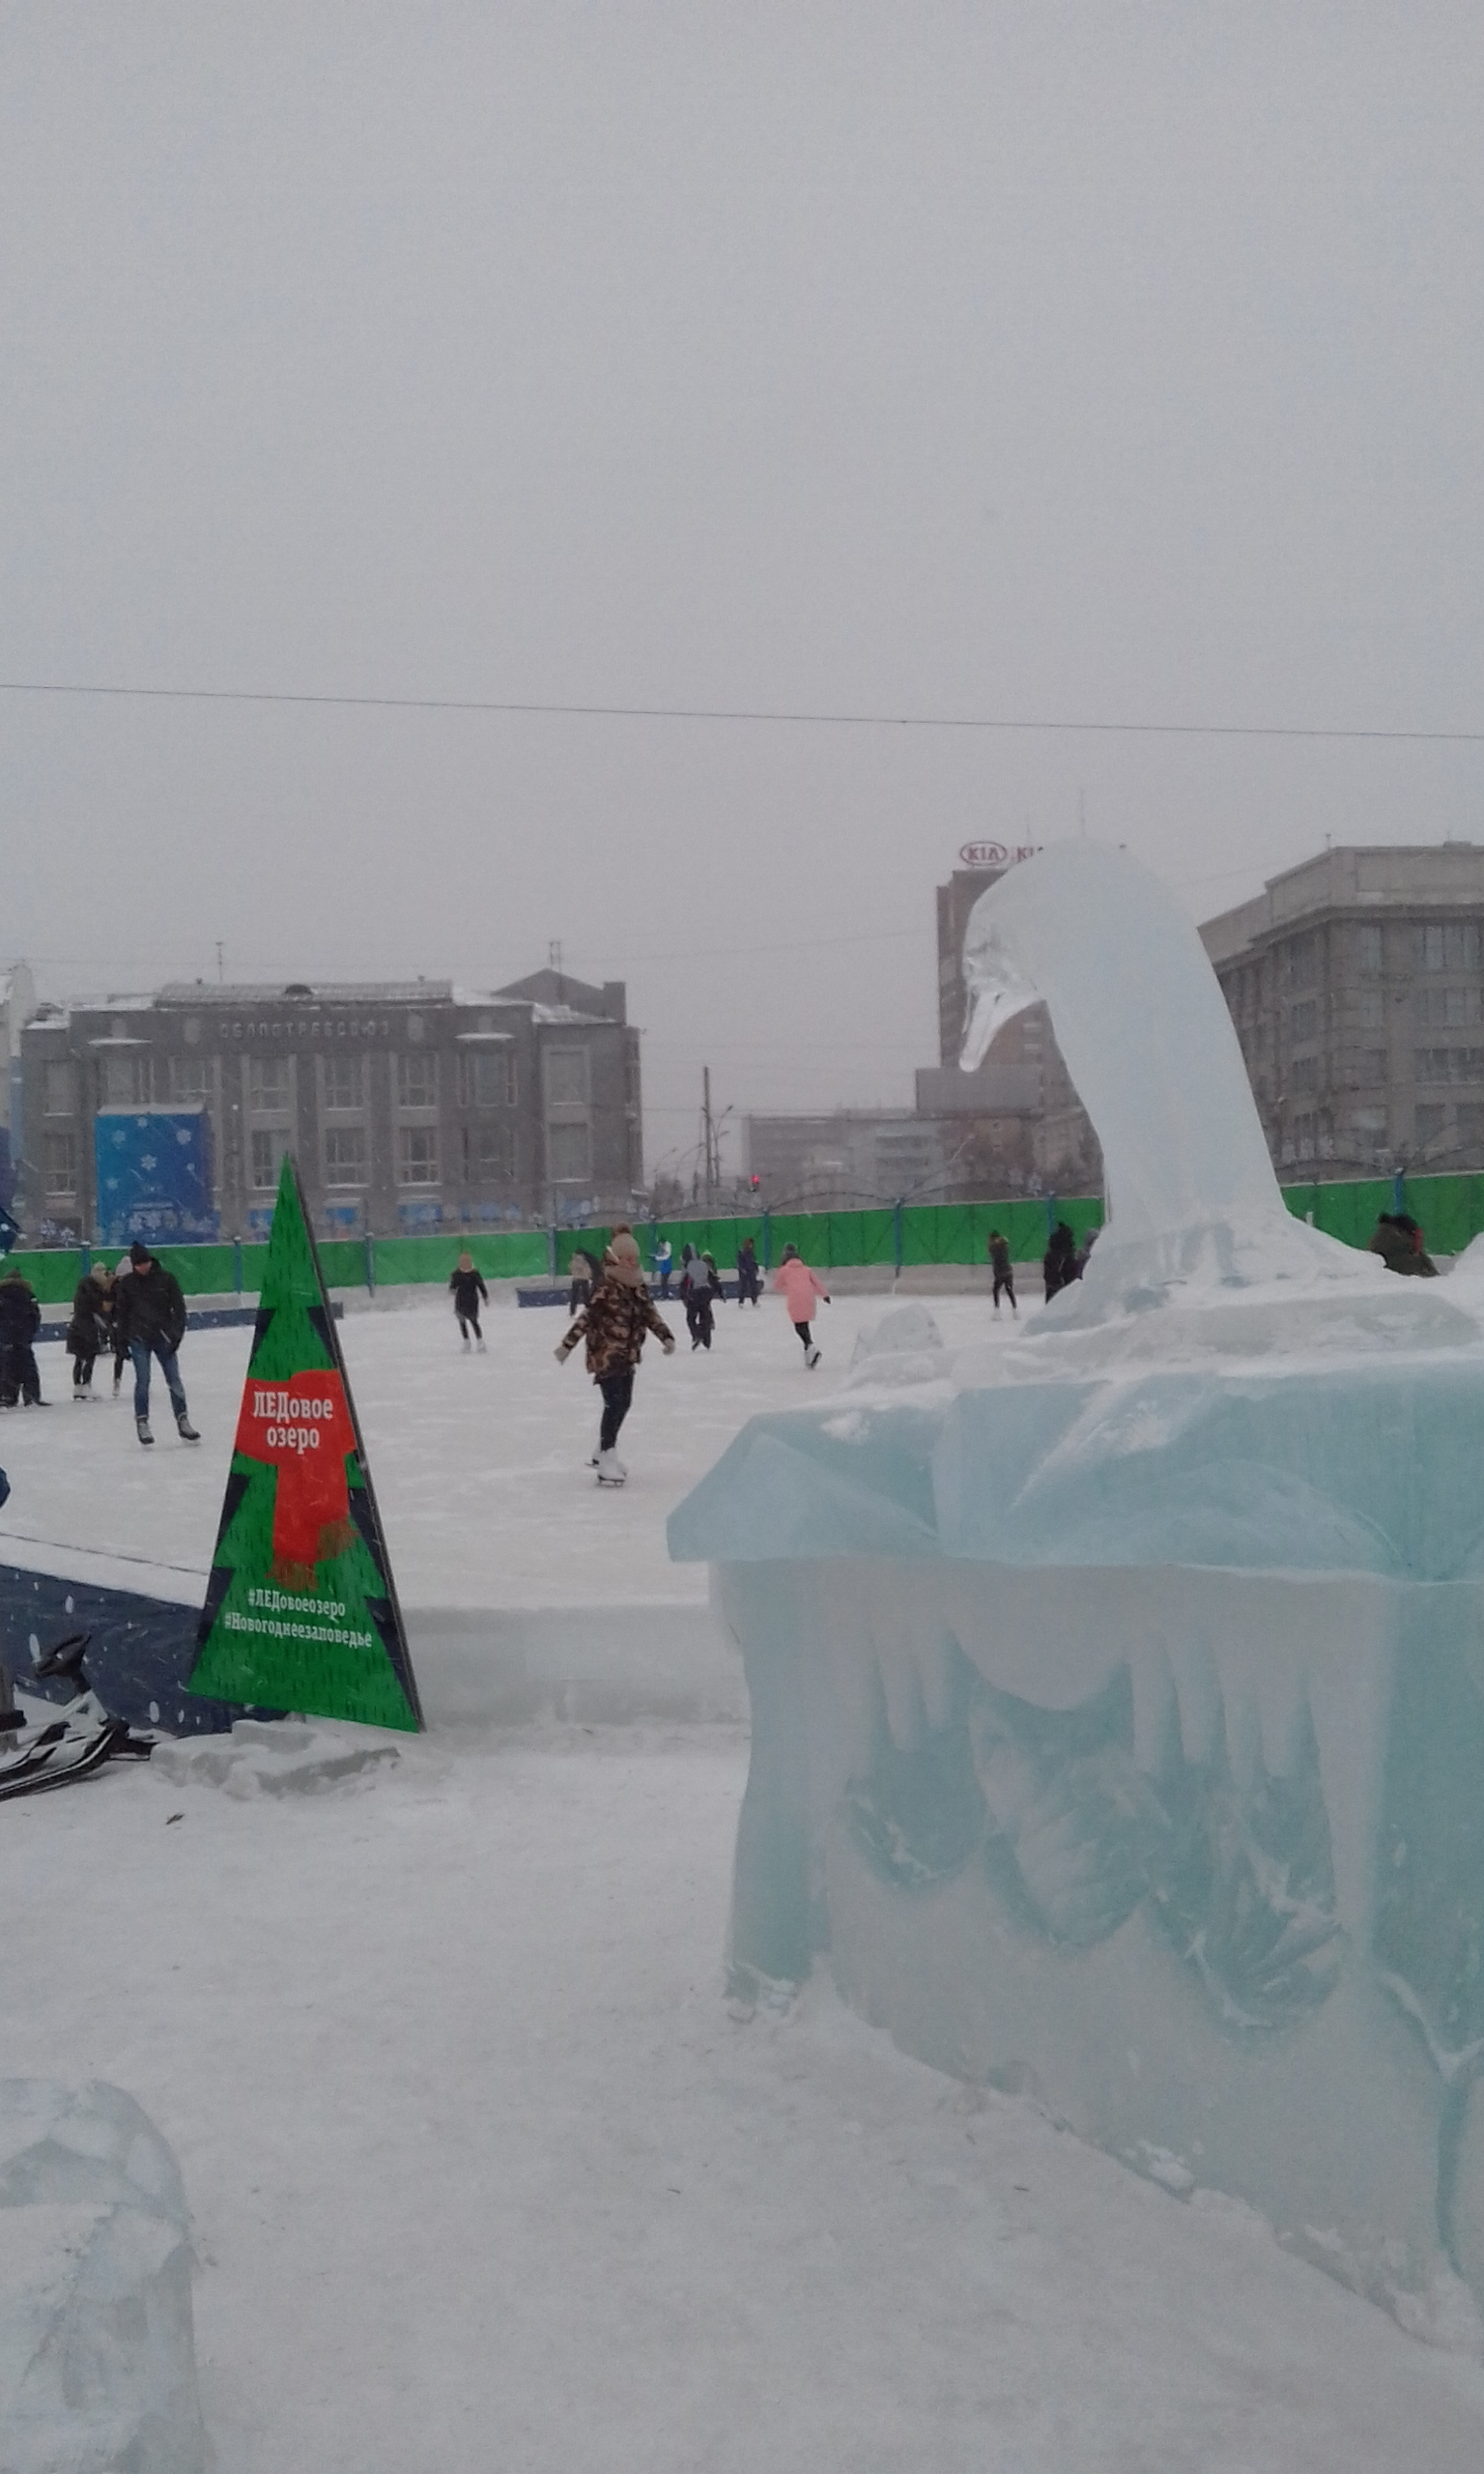 This story about food eventually connects to Novosibirsk. In the meantime, enjoy a view of the municipal skating rink, and its ever-vigilant penguin guard.